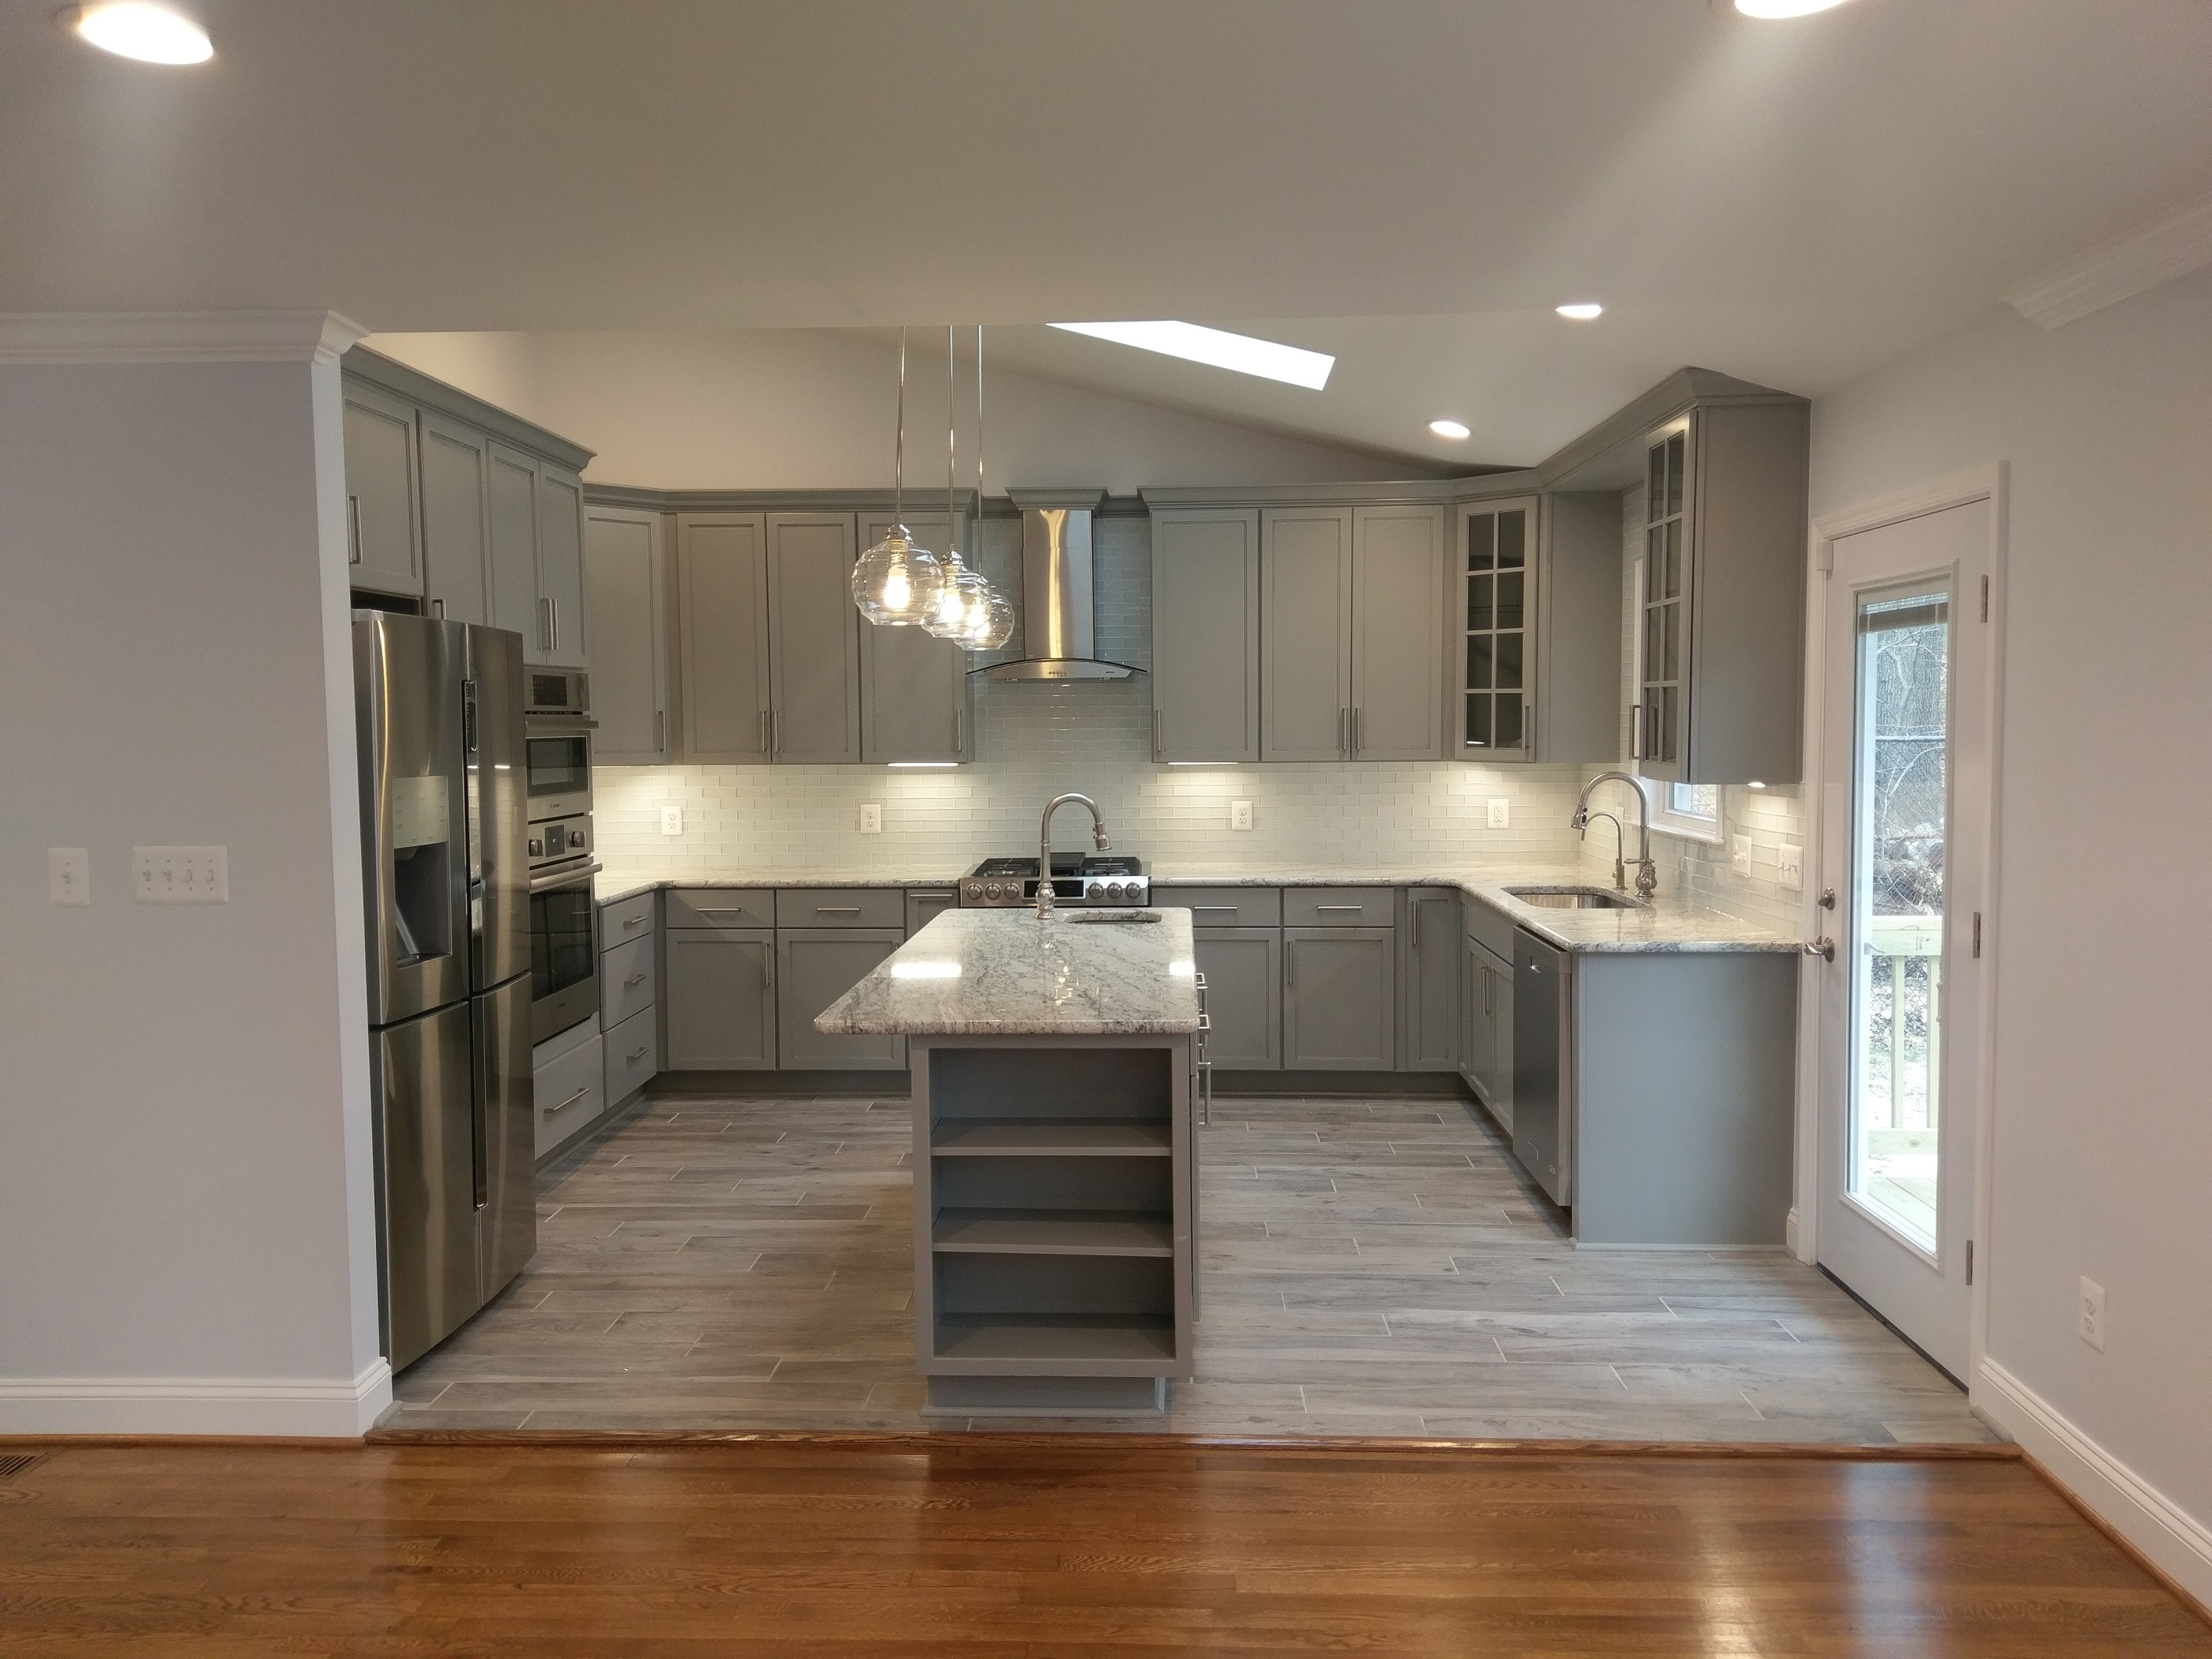 Kitchen Remodeling Contractor in Northern Virginia